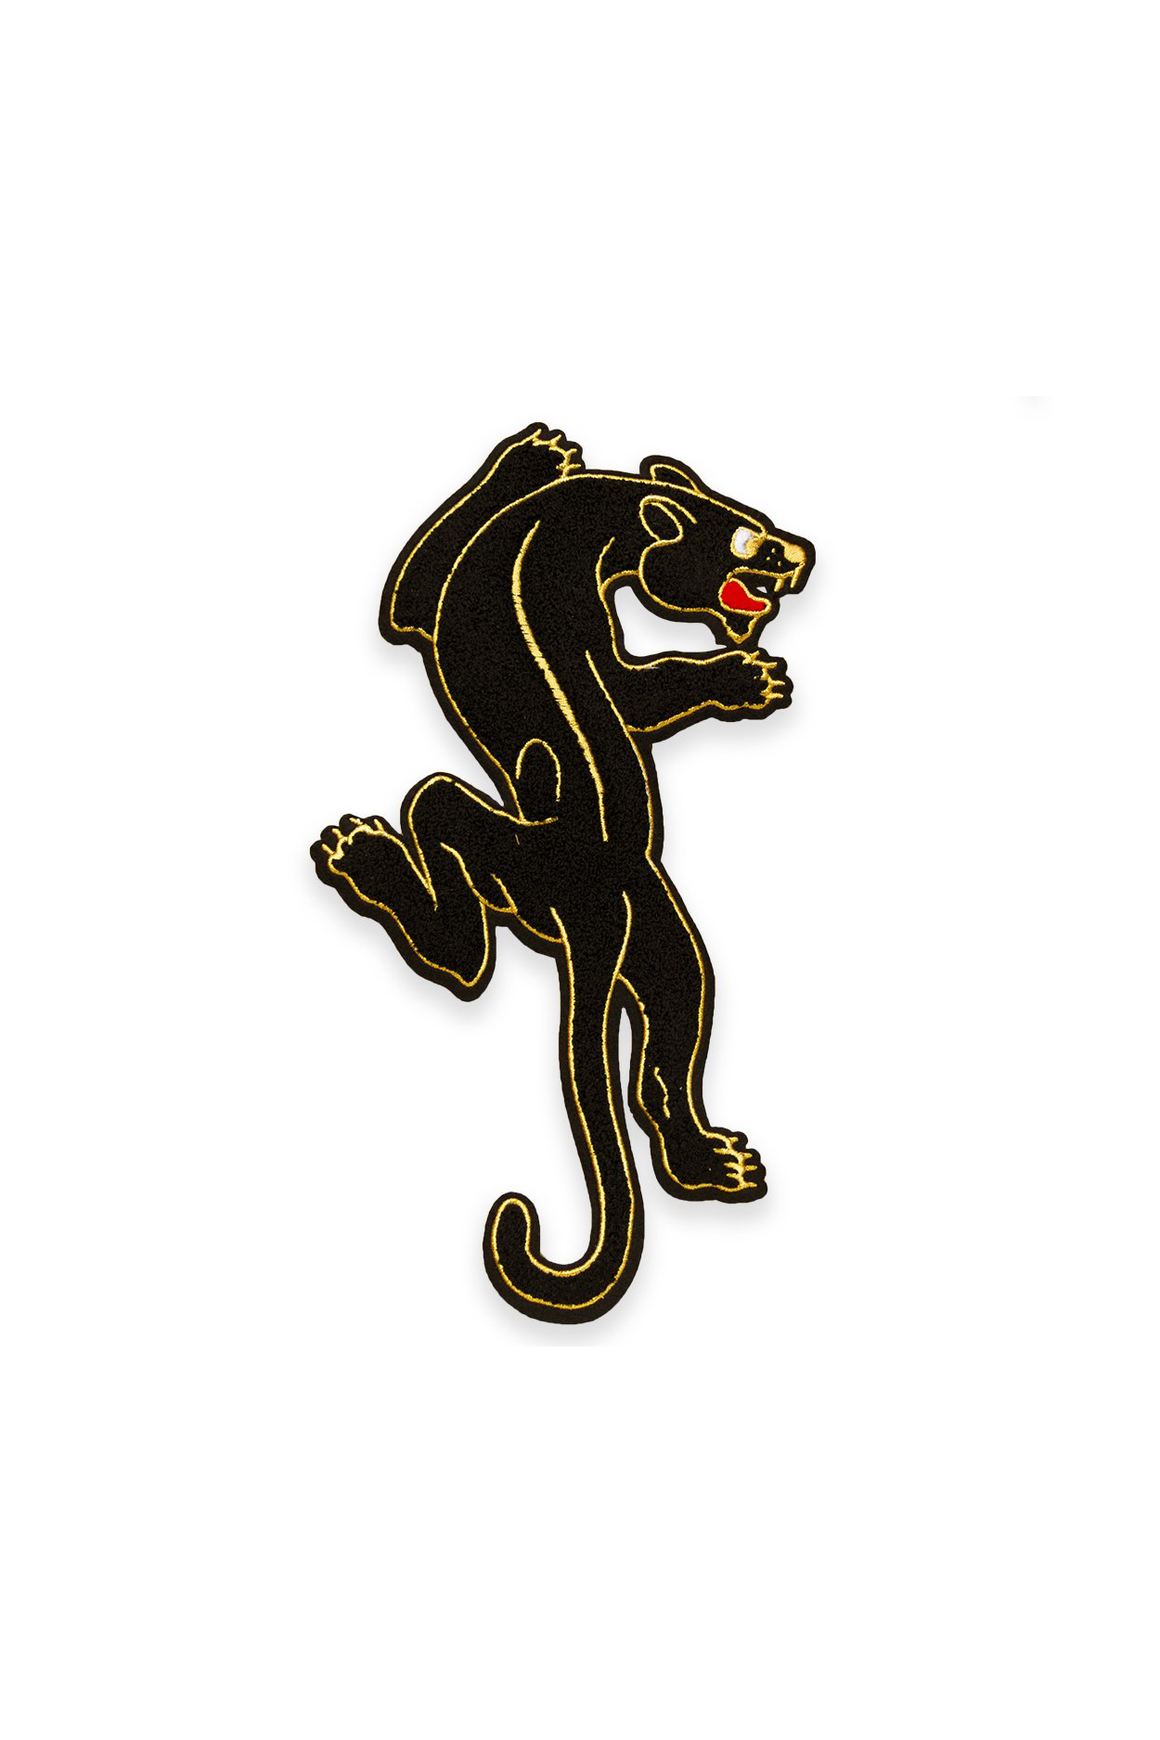 Crawling Panther Chenille Back Patch - Philistine